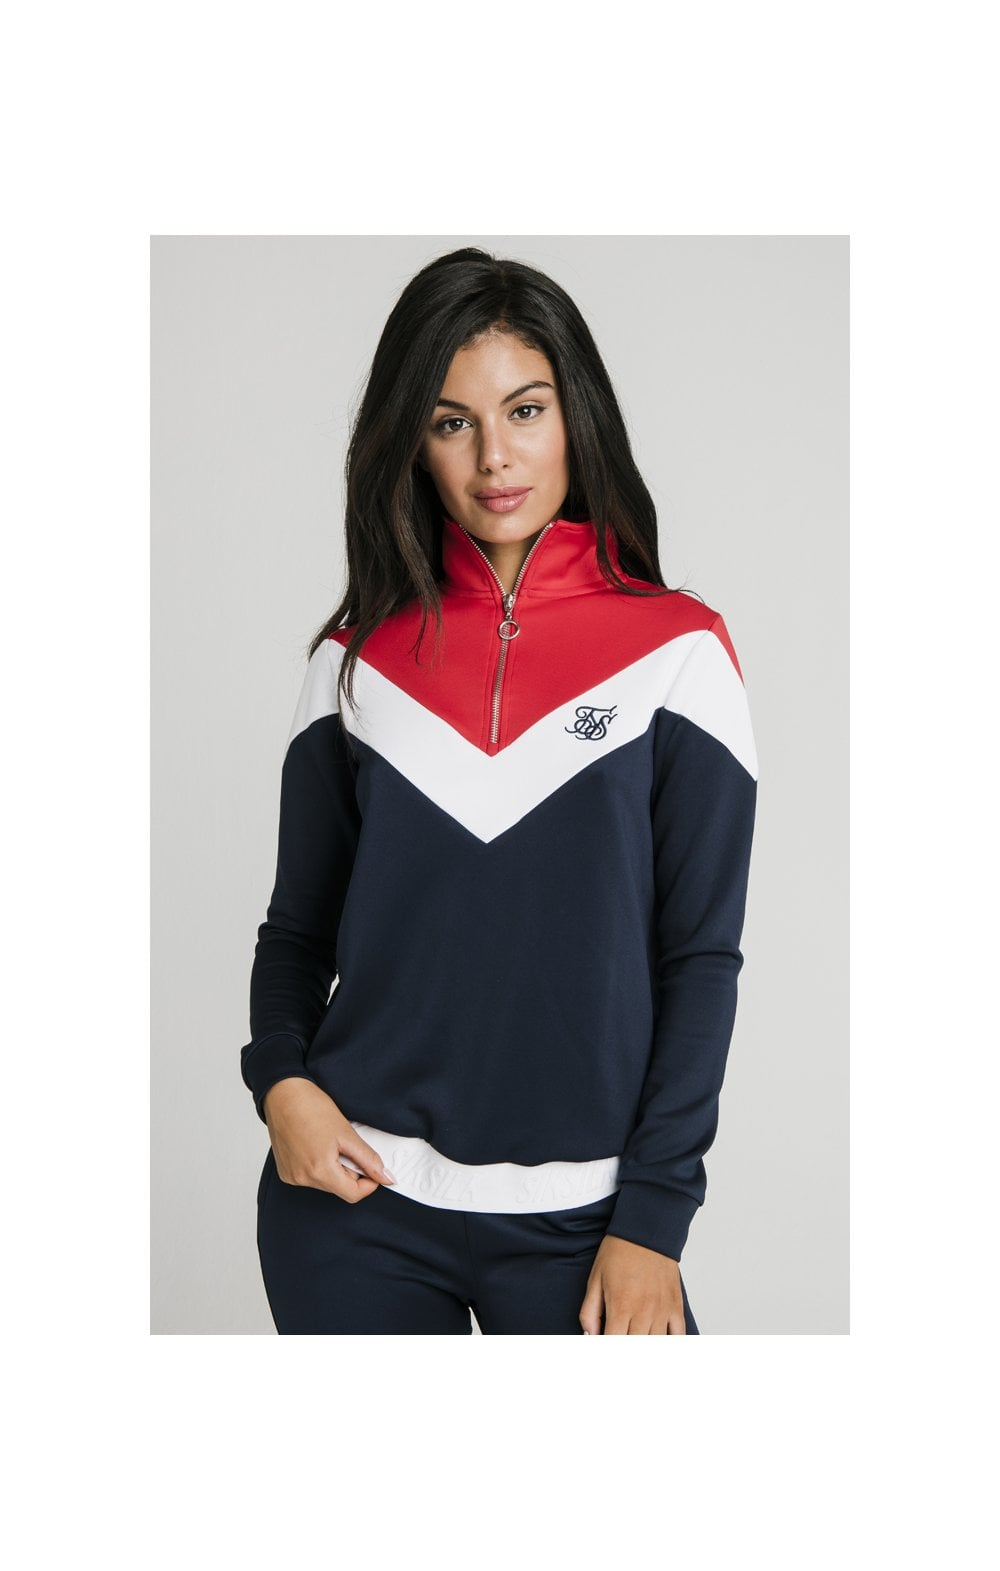 SikSilk Retro Sport Track Top - Navy, Red & White